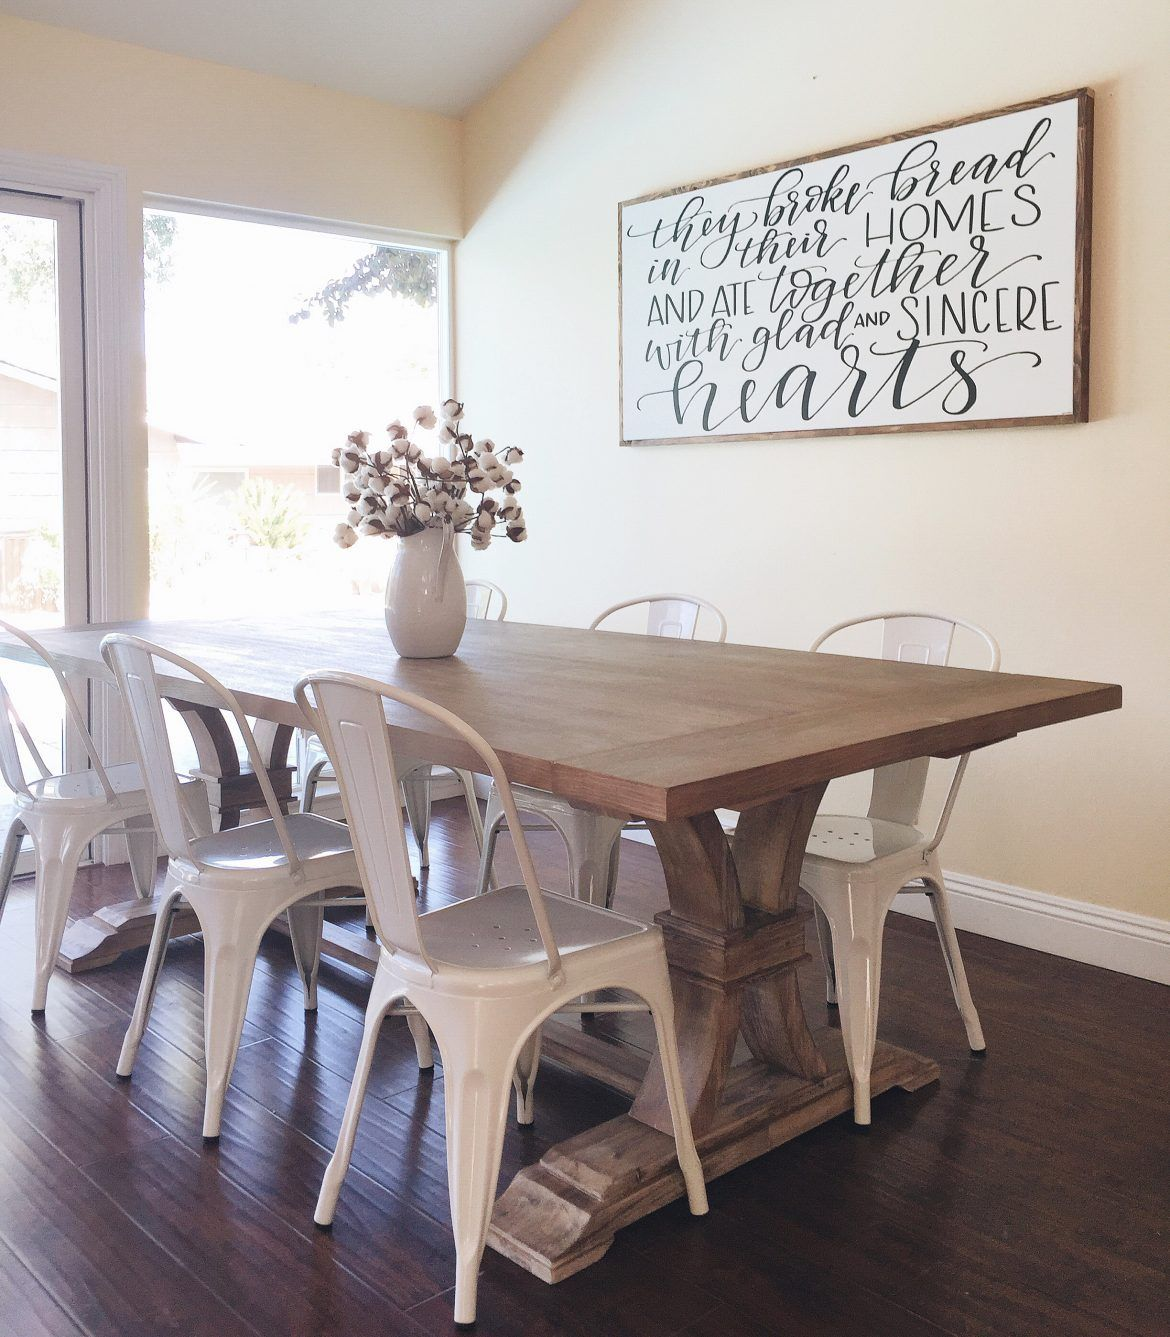 farmhouse dining room table | farmhouse style | pinterest, Esstisch ideennn